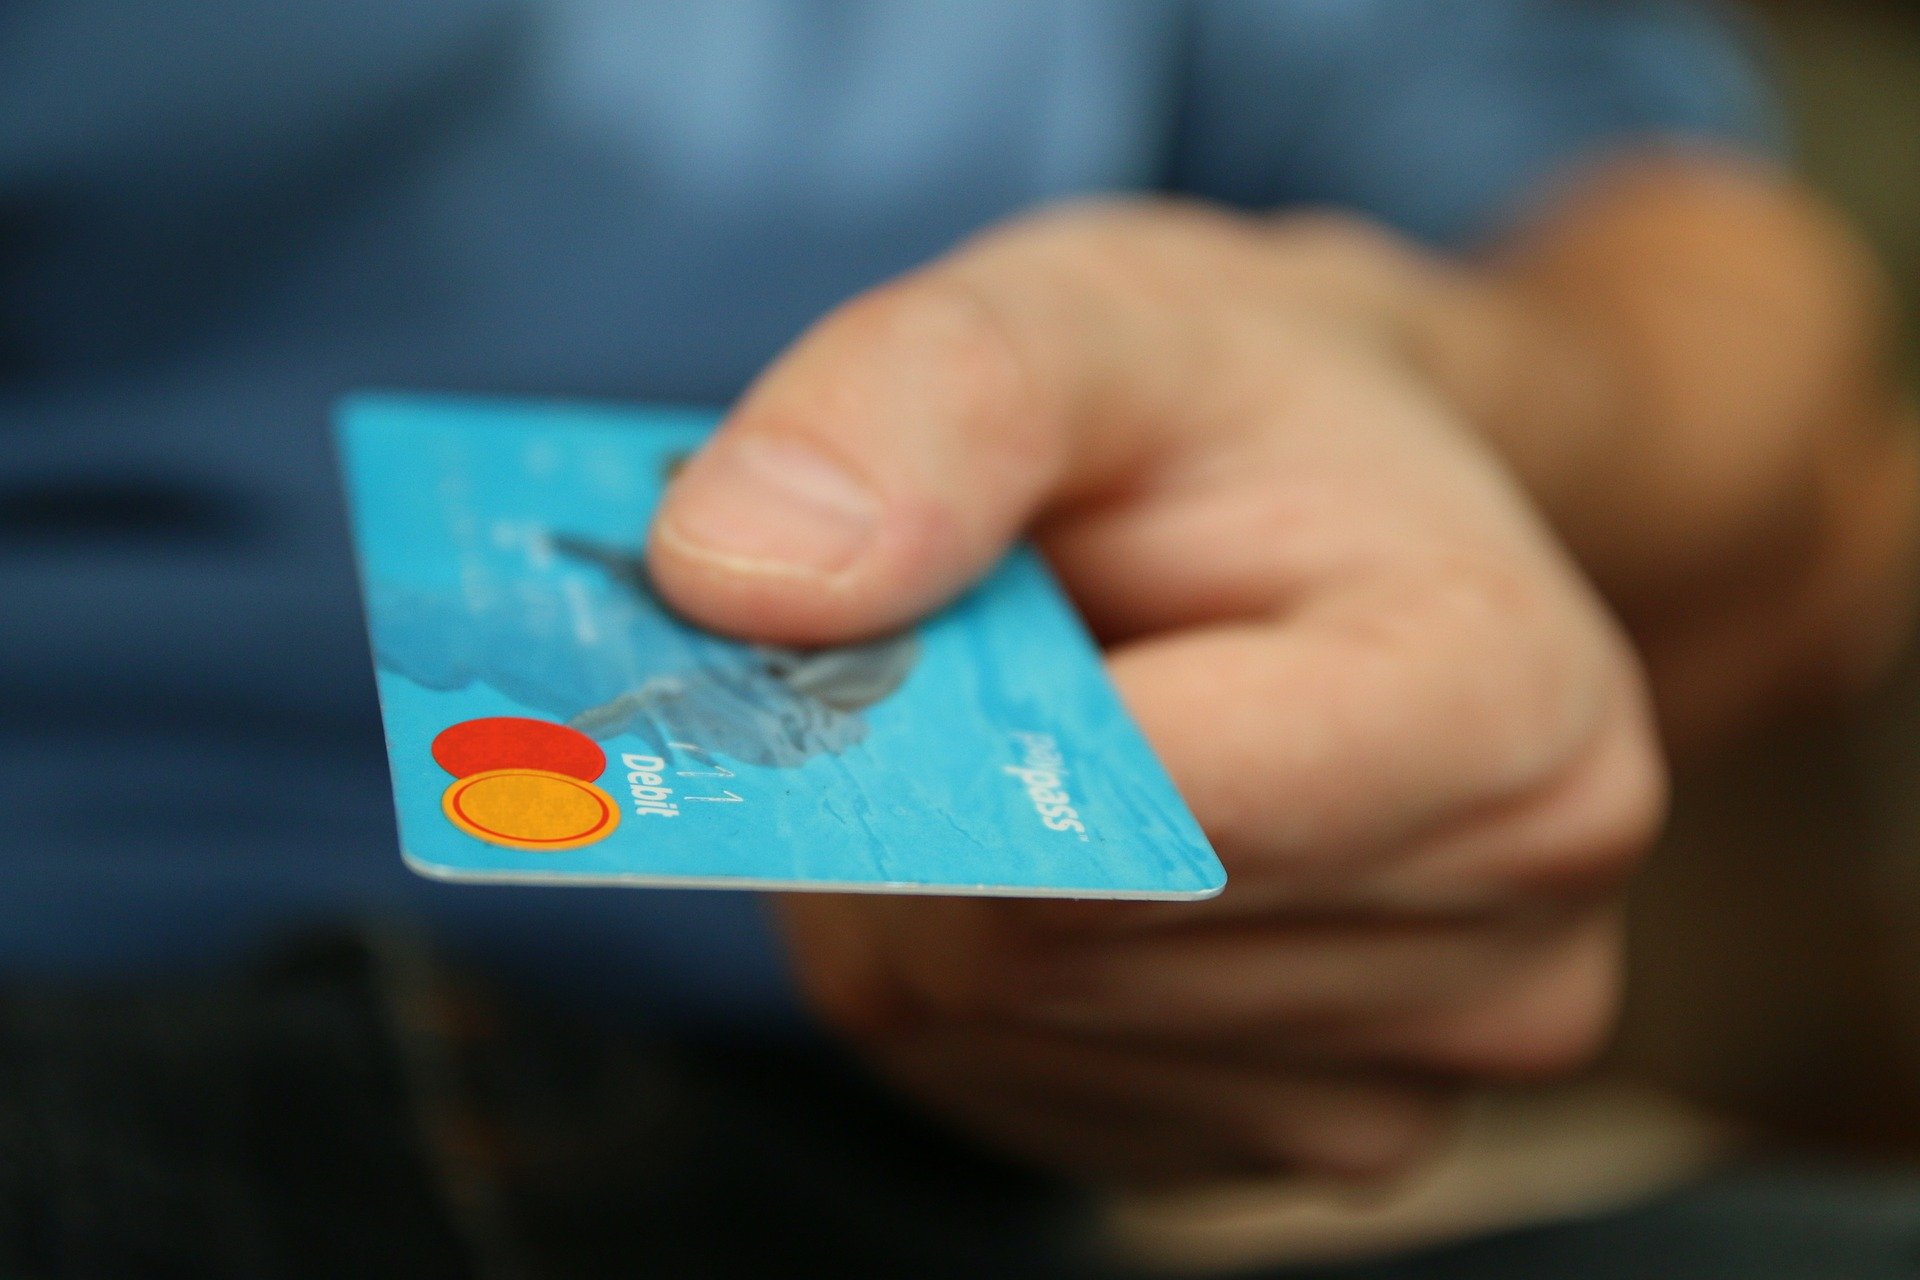 Decline codes can be due to a foreign Visa or MasterCard debit card